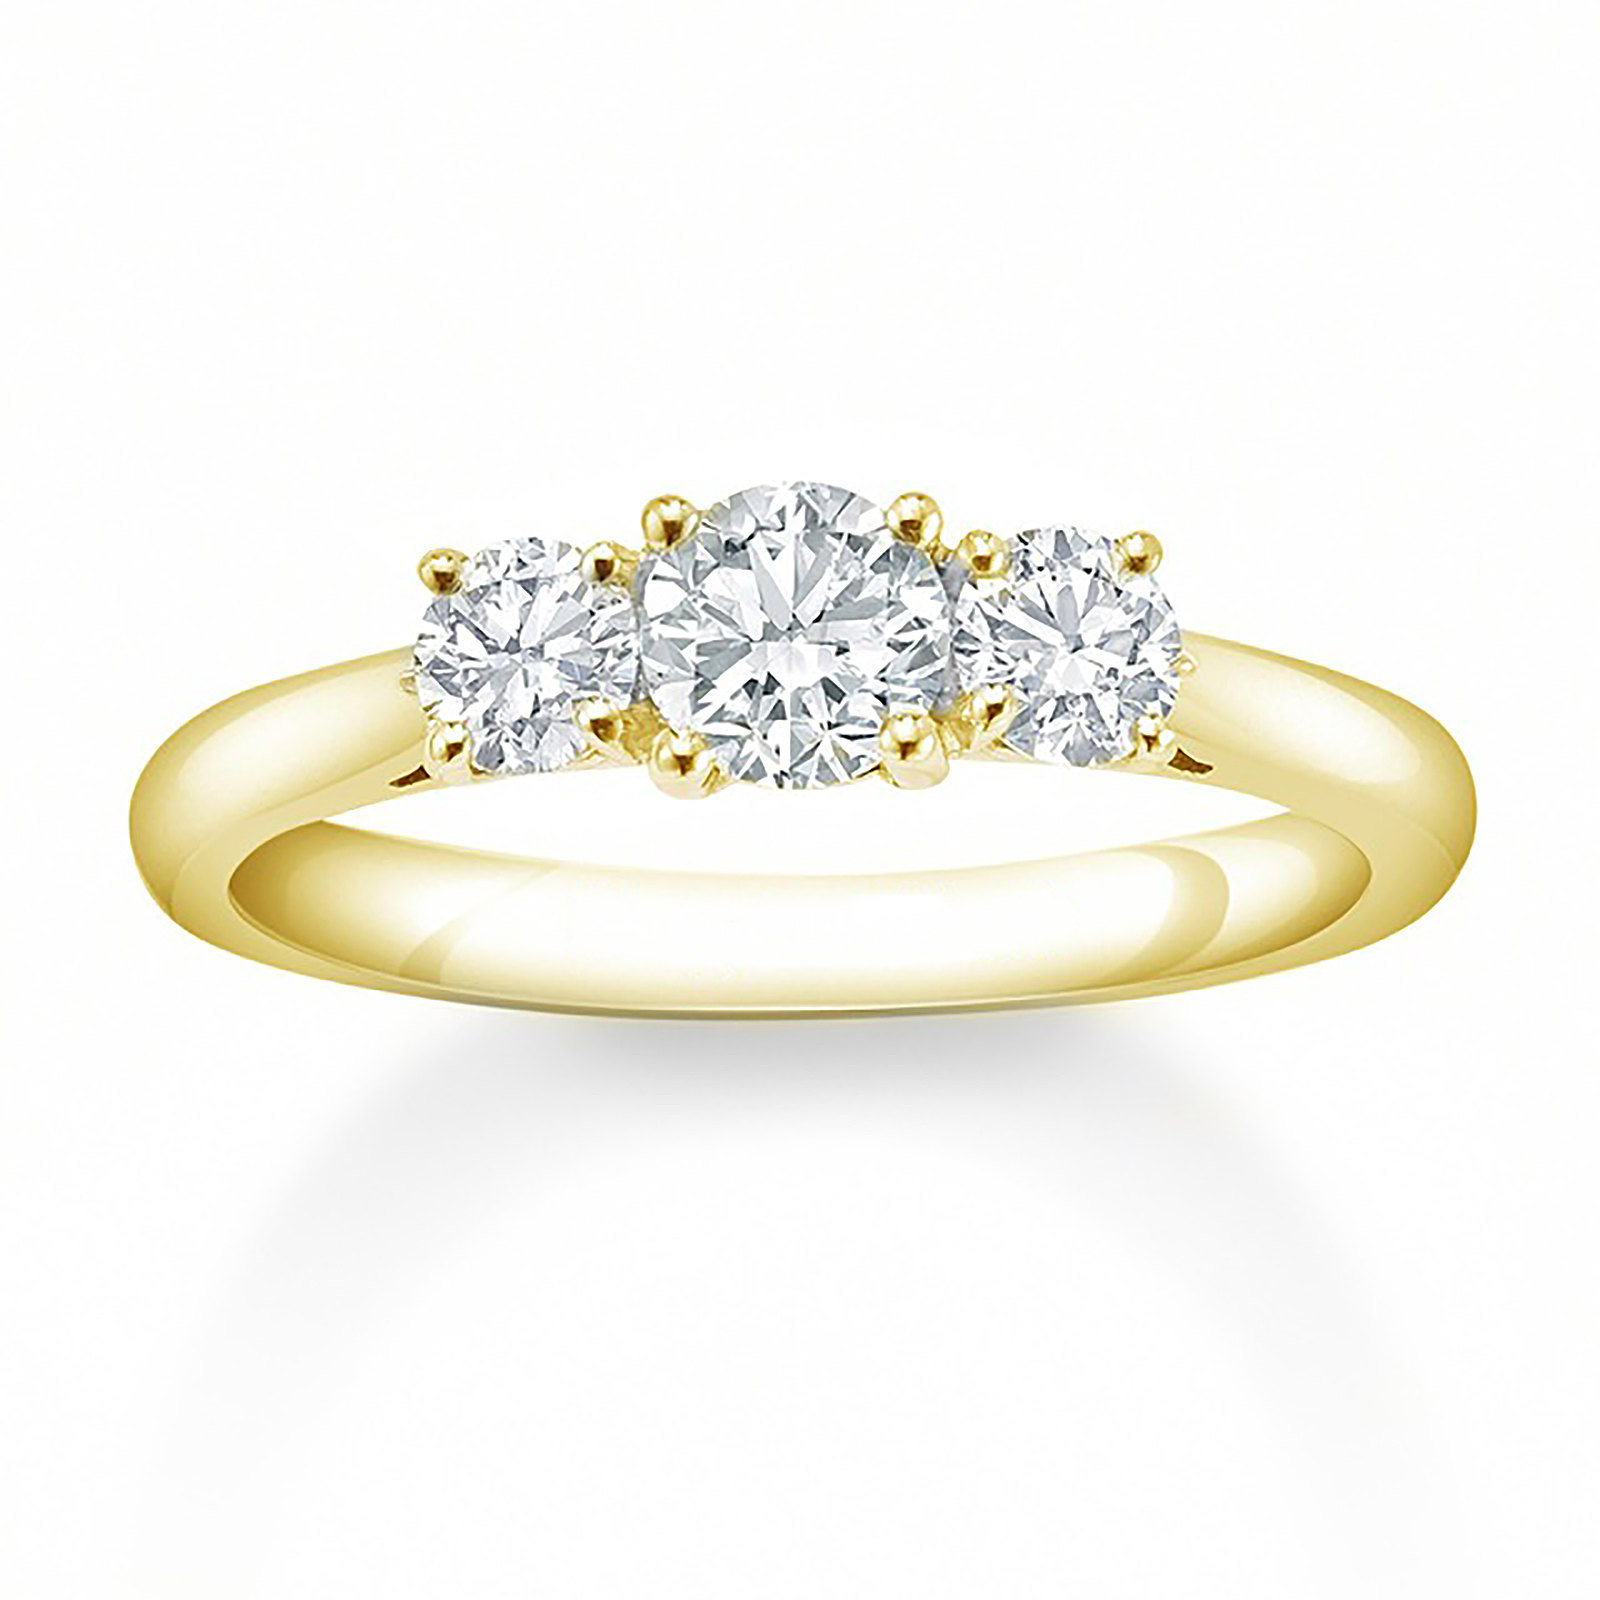 three j front ring z mg for jewelry stone rings jewellery at org id platinum sale diamond engagement dia